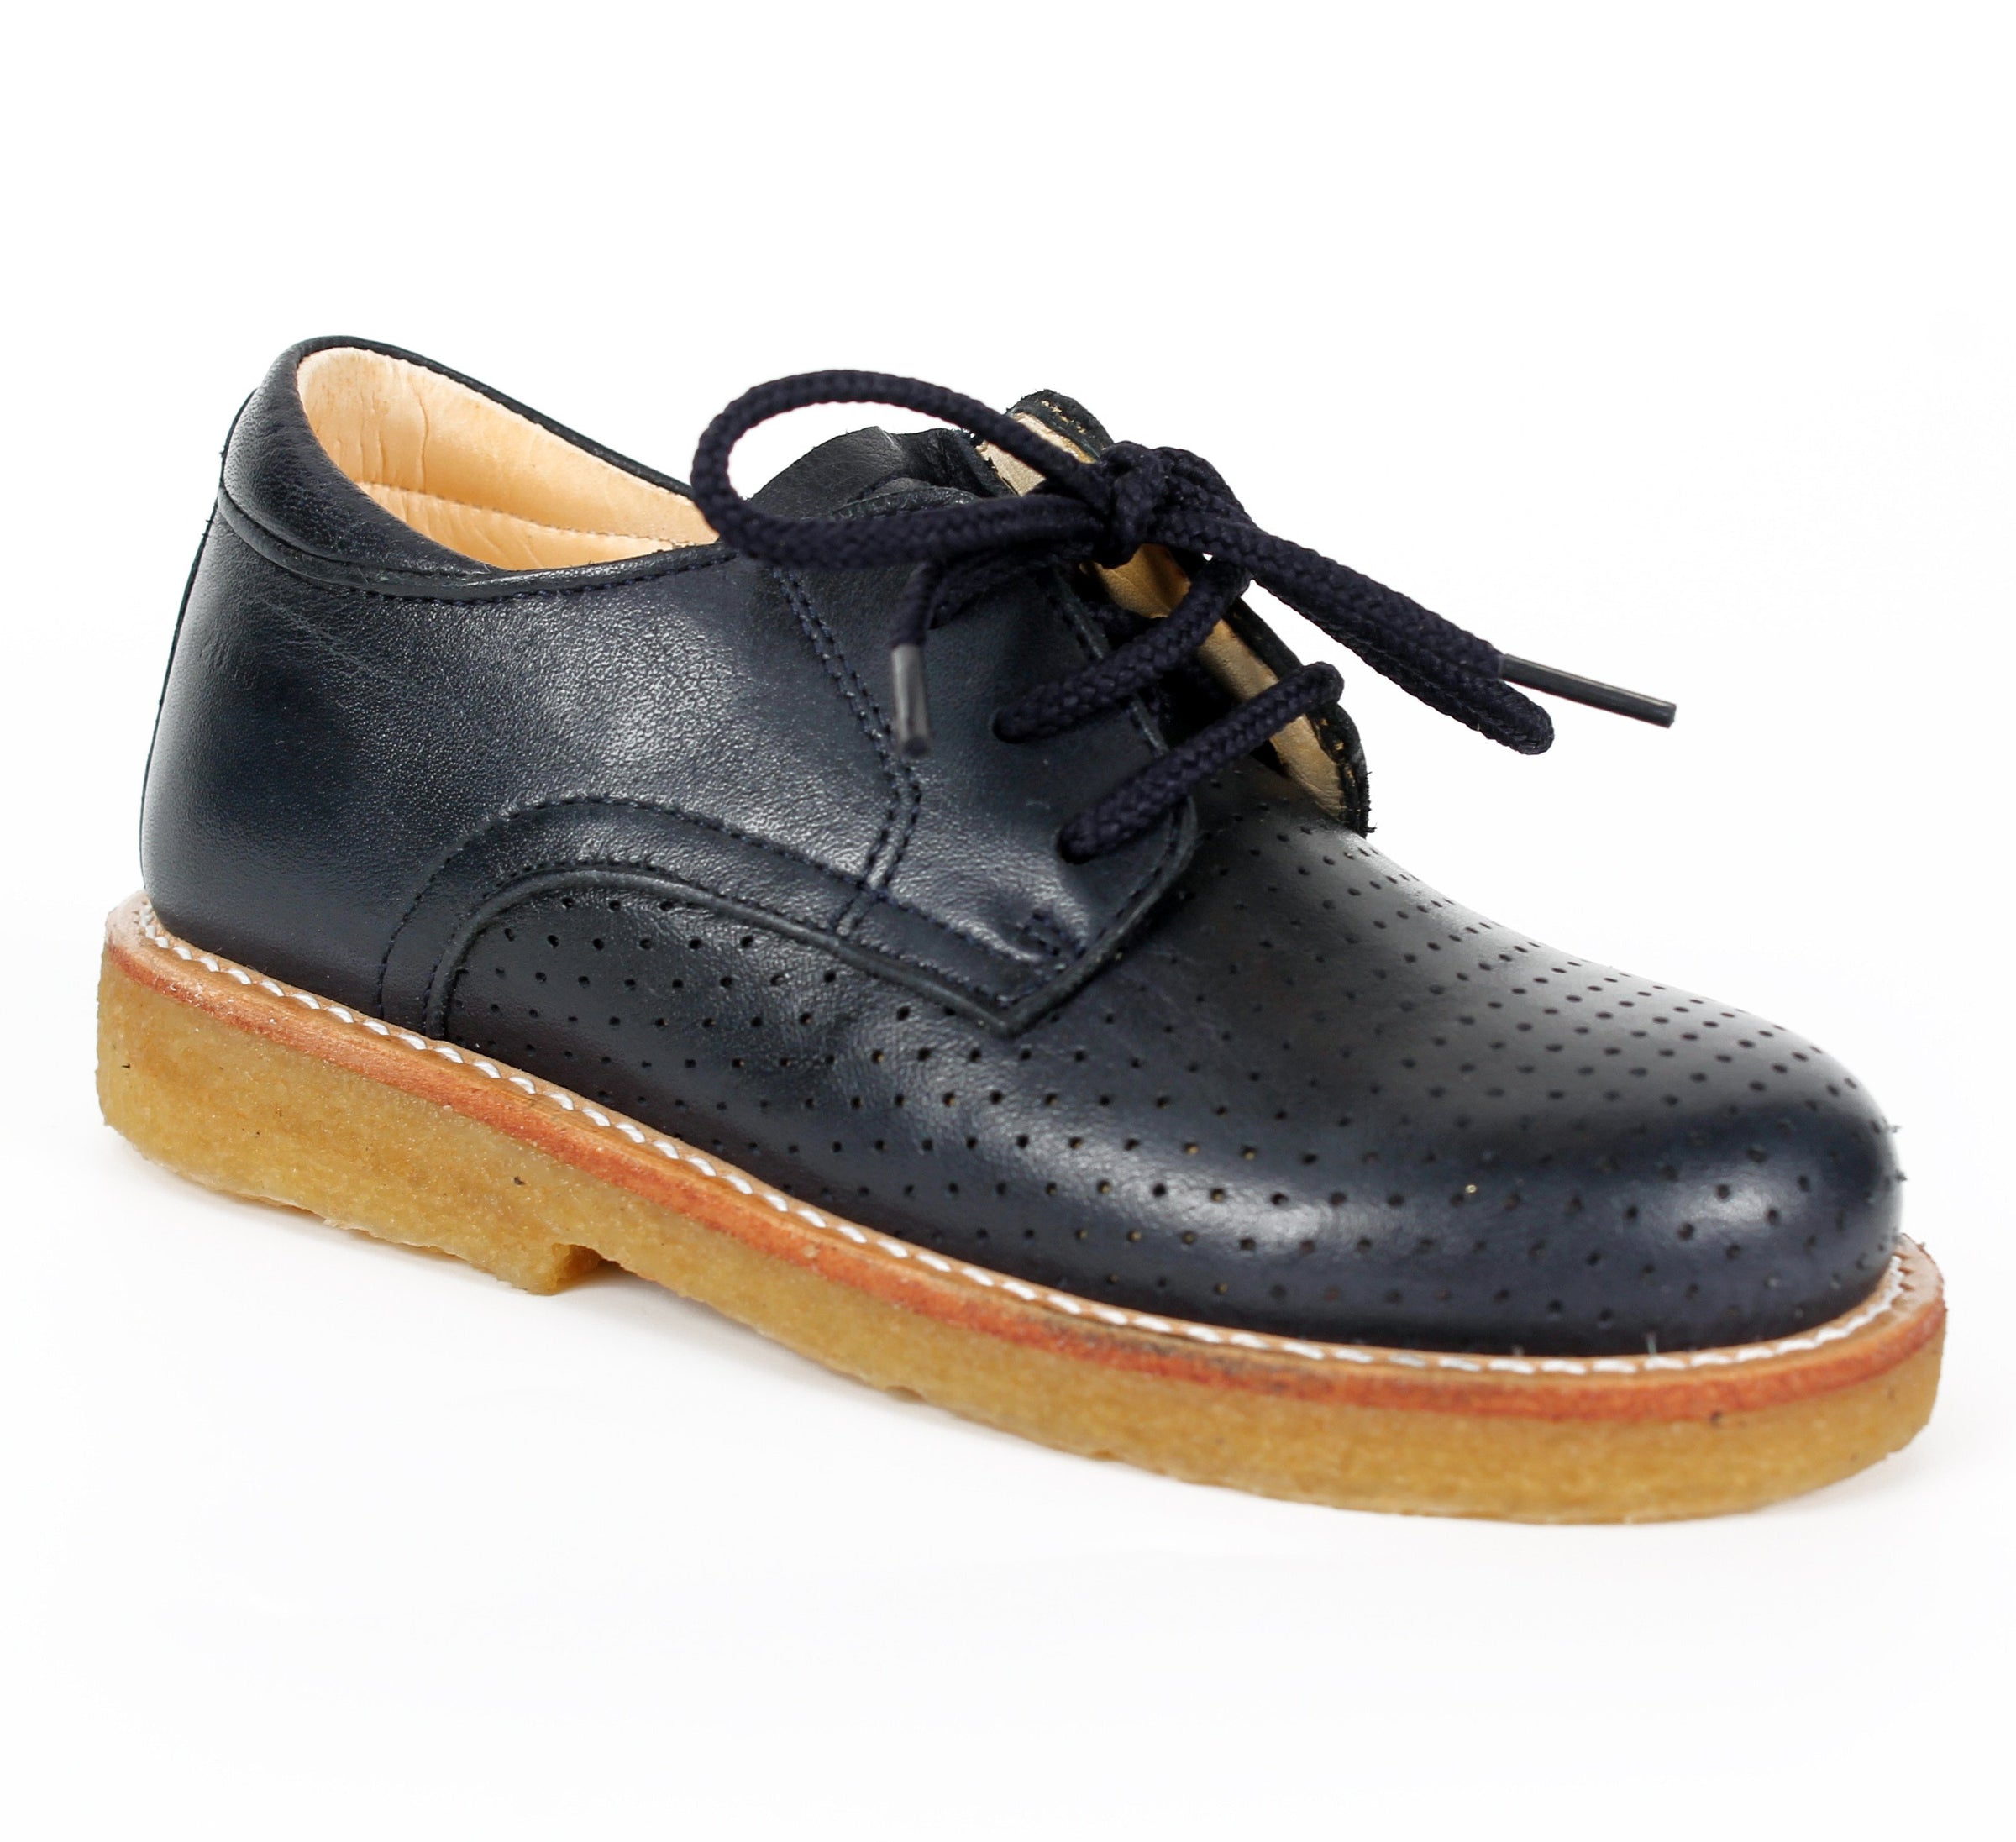 a722180856b78 Navy Blue Leather Unisex Lace Up Shoe - Angulus - LAZY FRANCIS - Shop in  store